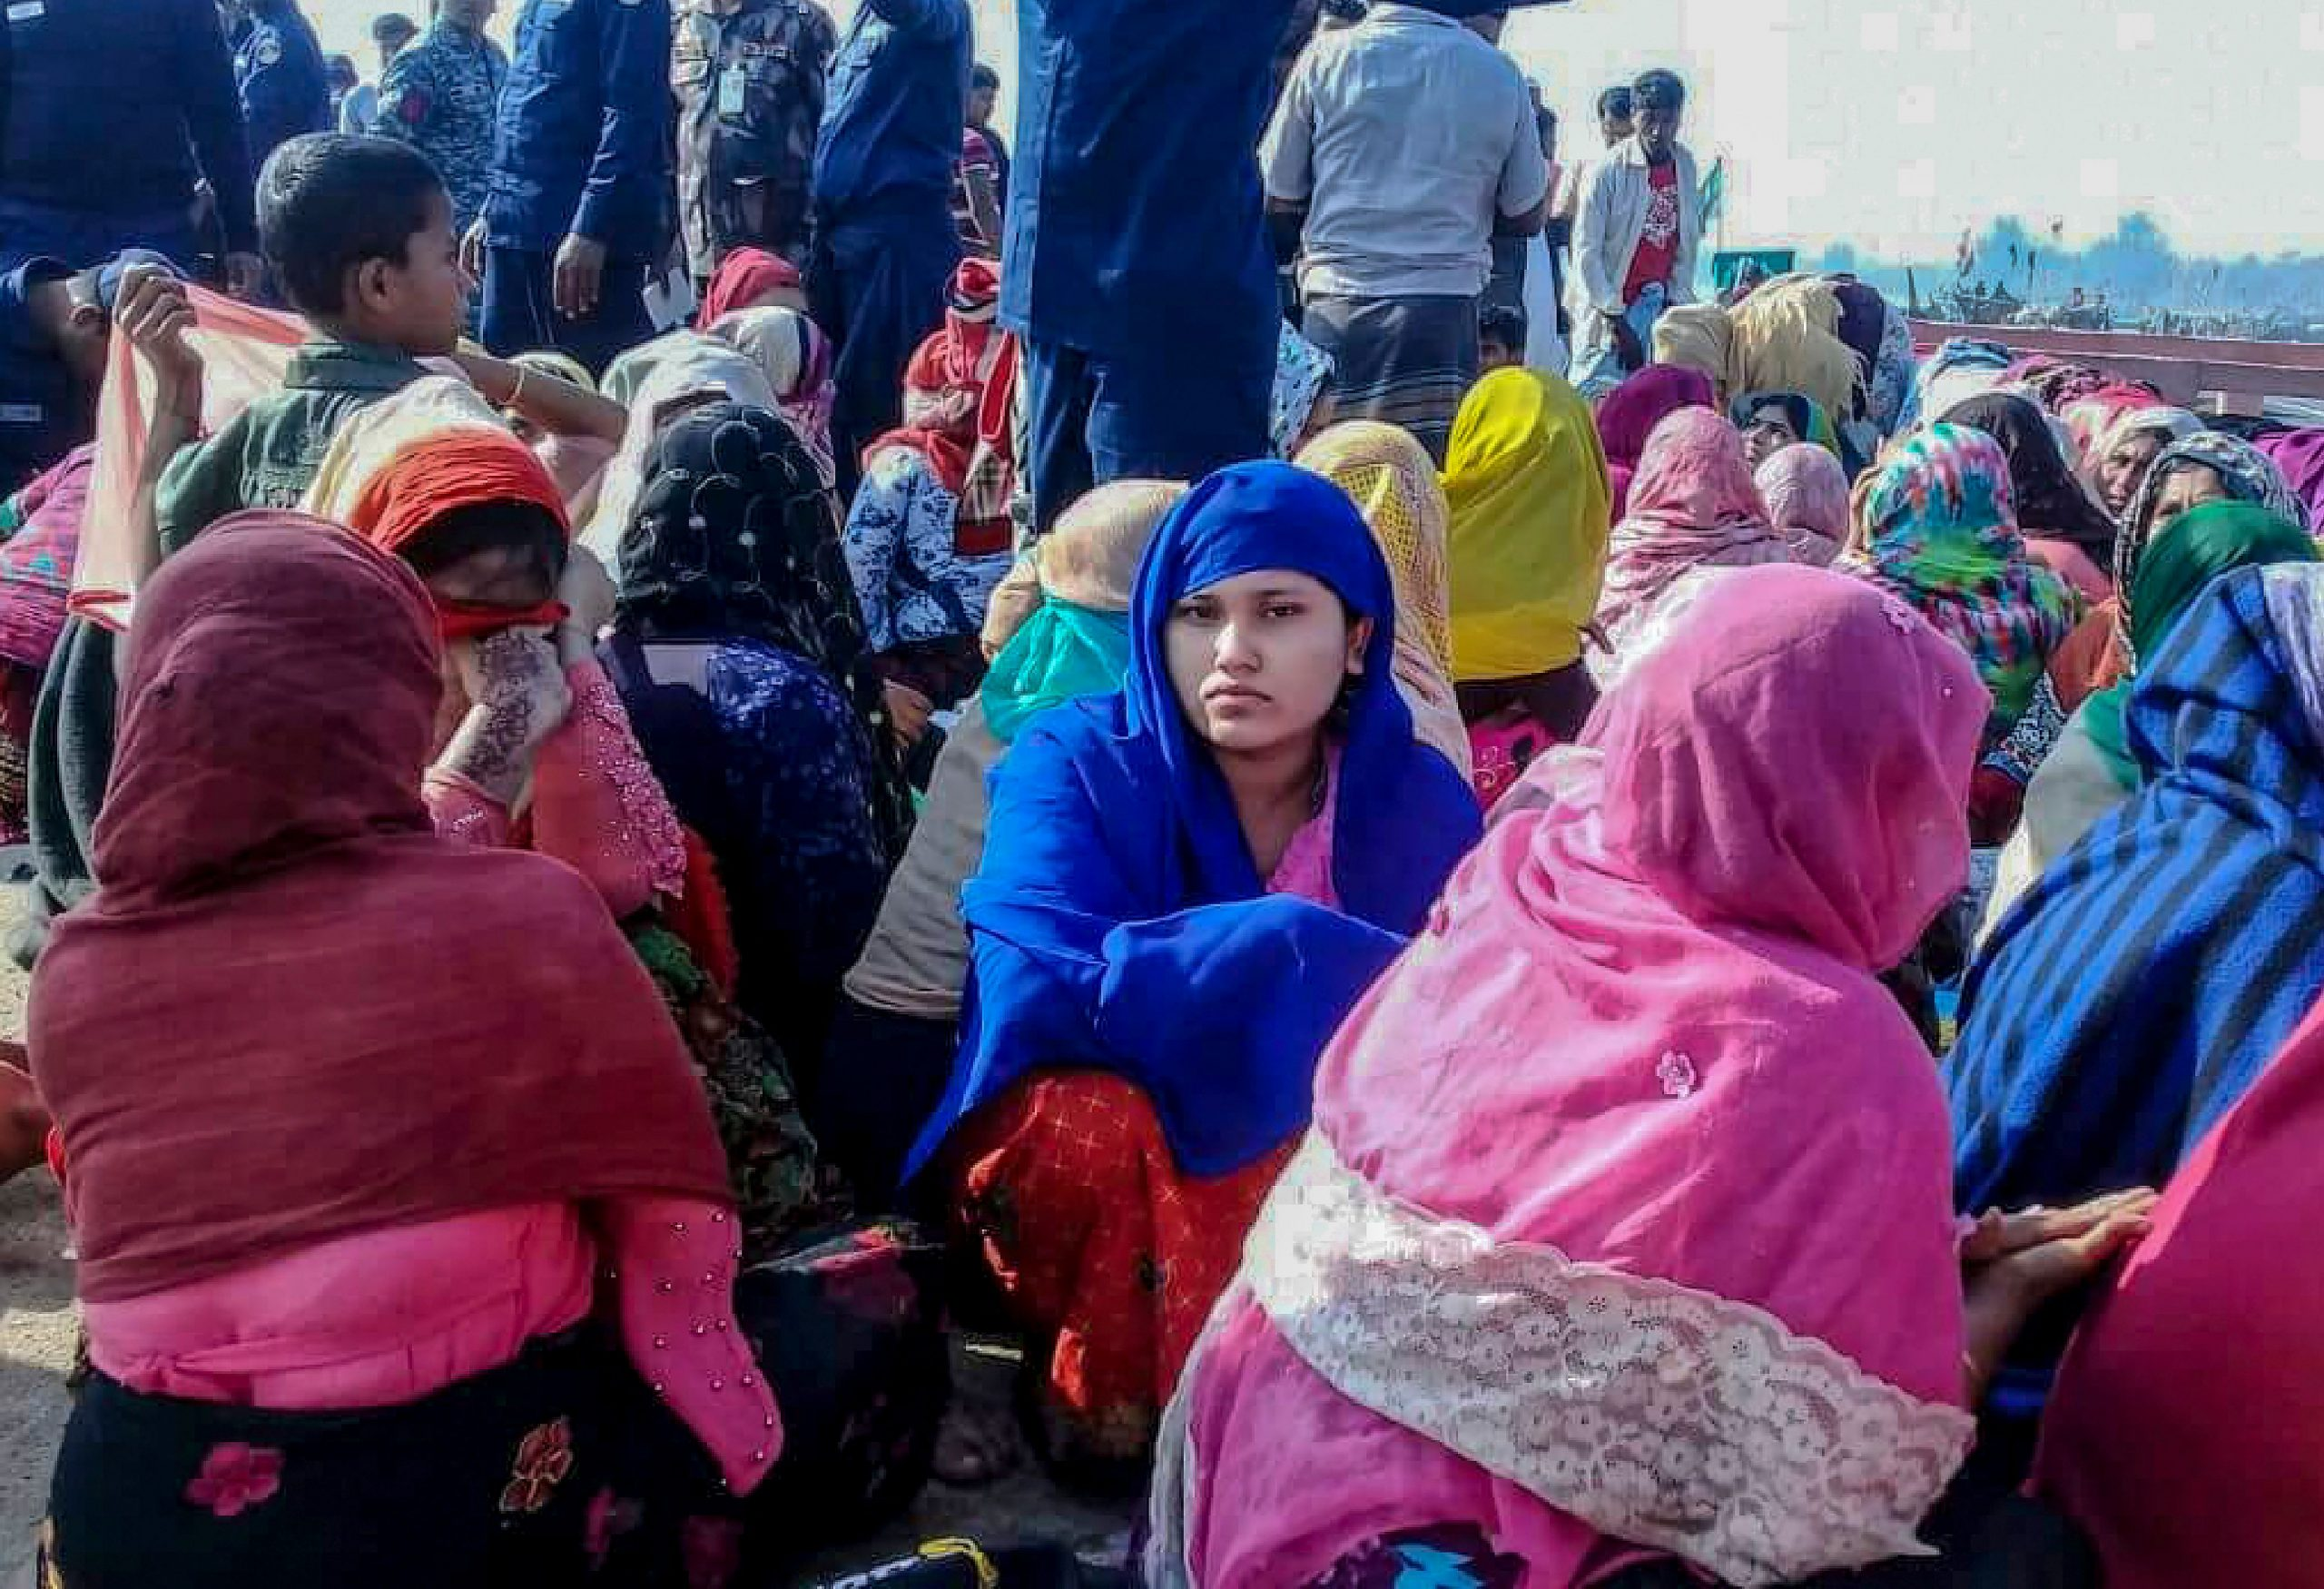 Nearly one million Rohingya Muslims fled a crackdown by the Myanmarese military in 2017 (Photo by STR / AFP)